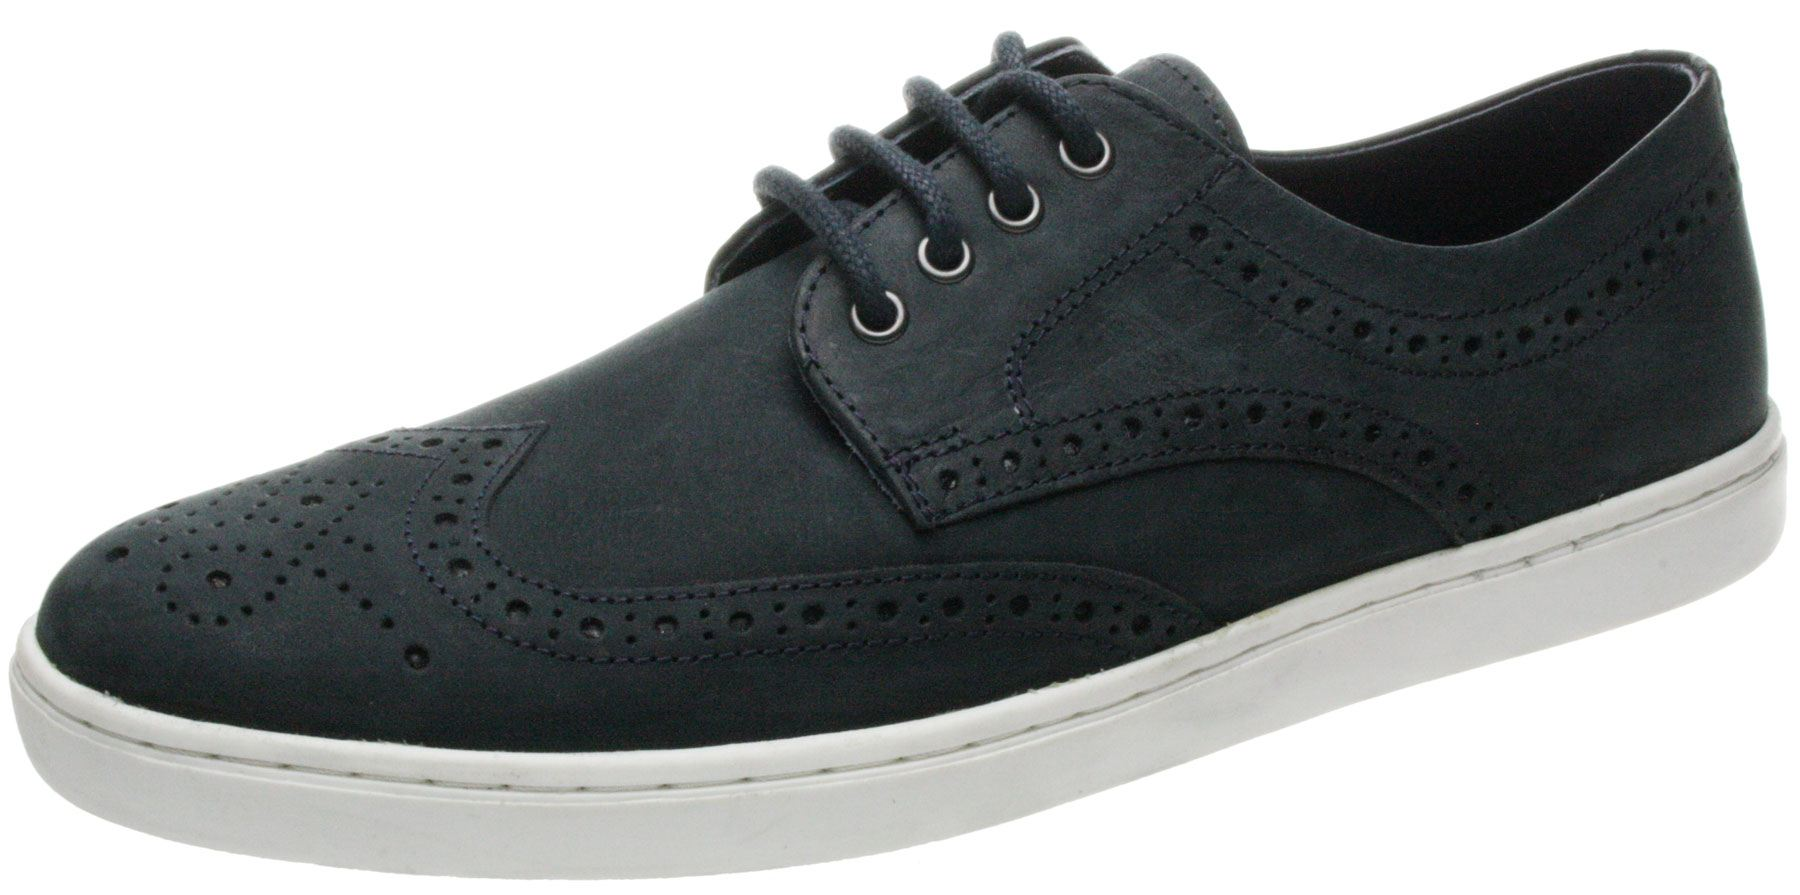 Mens-Red-tape-Girvan-Brown-Navy-lace-up-leather-brogue-trainer-pump-shoes